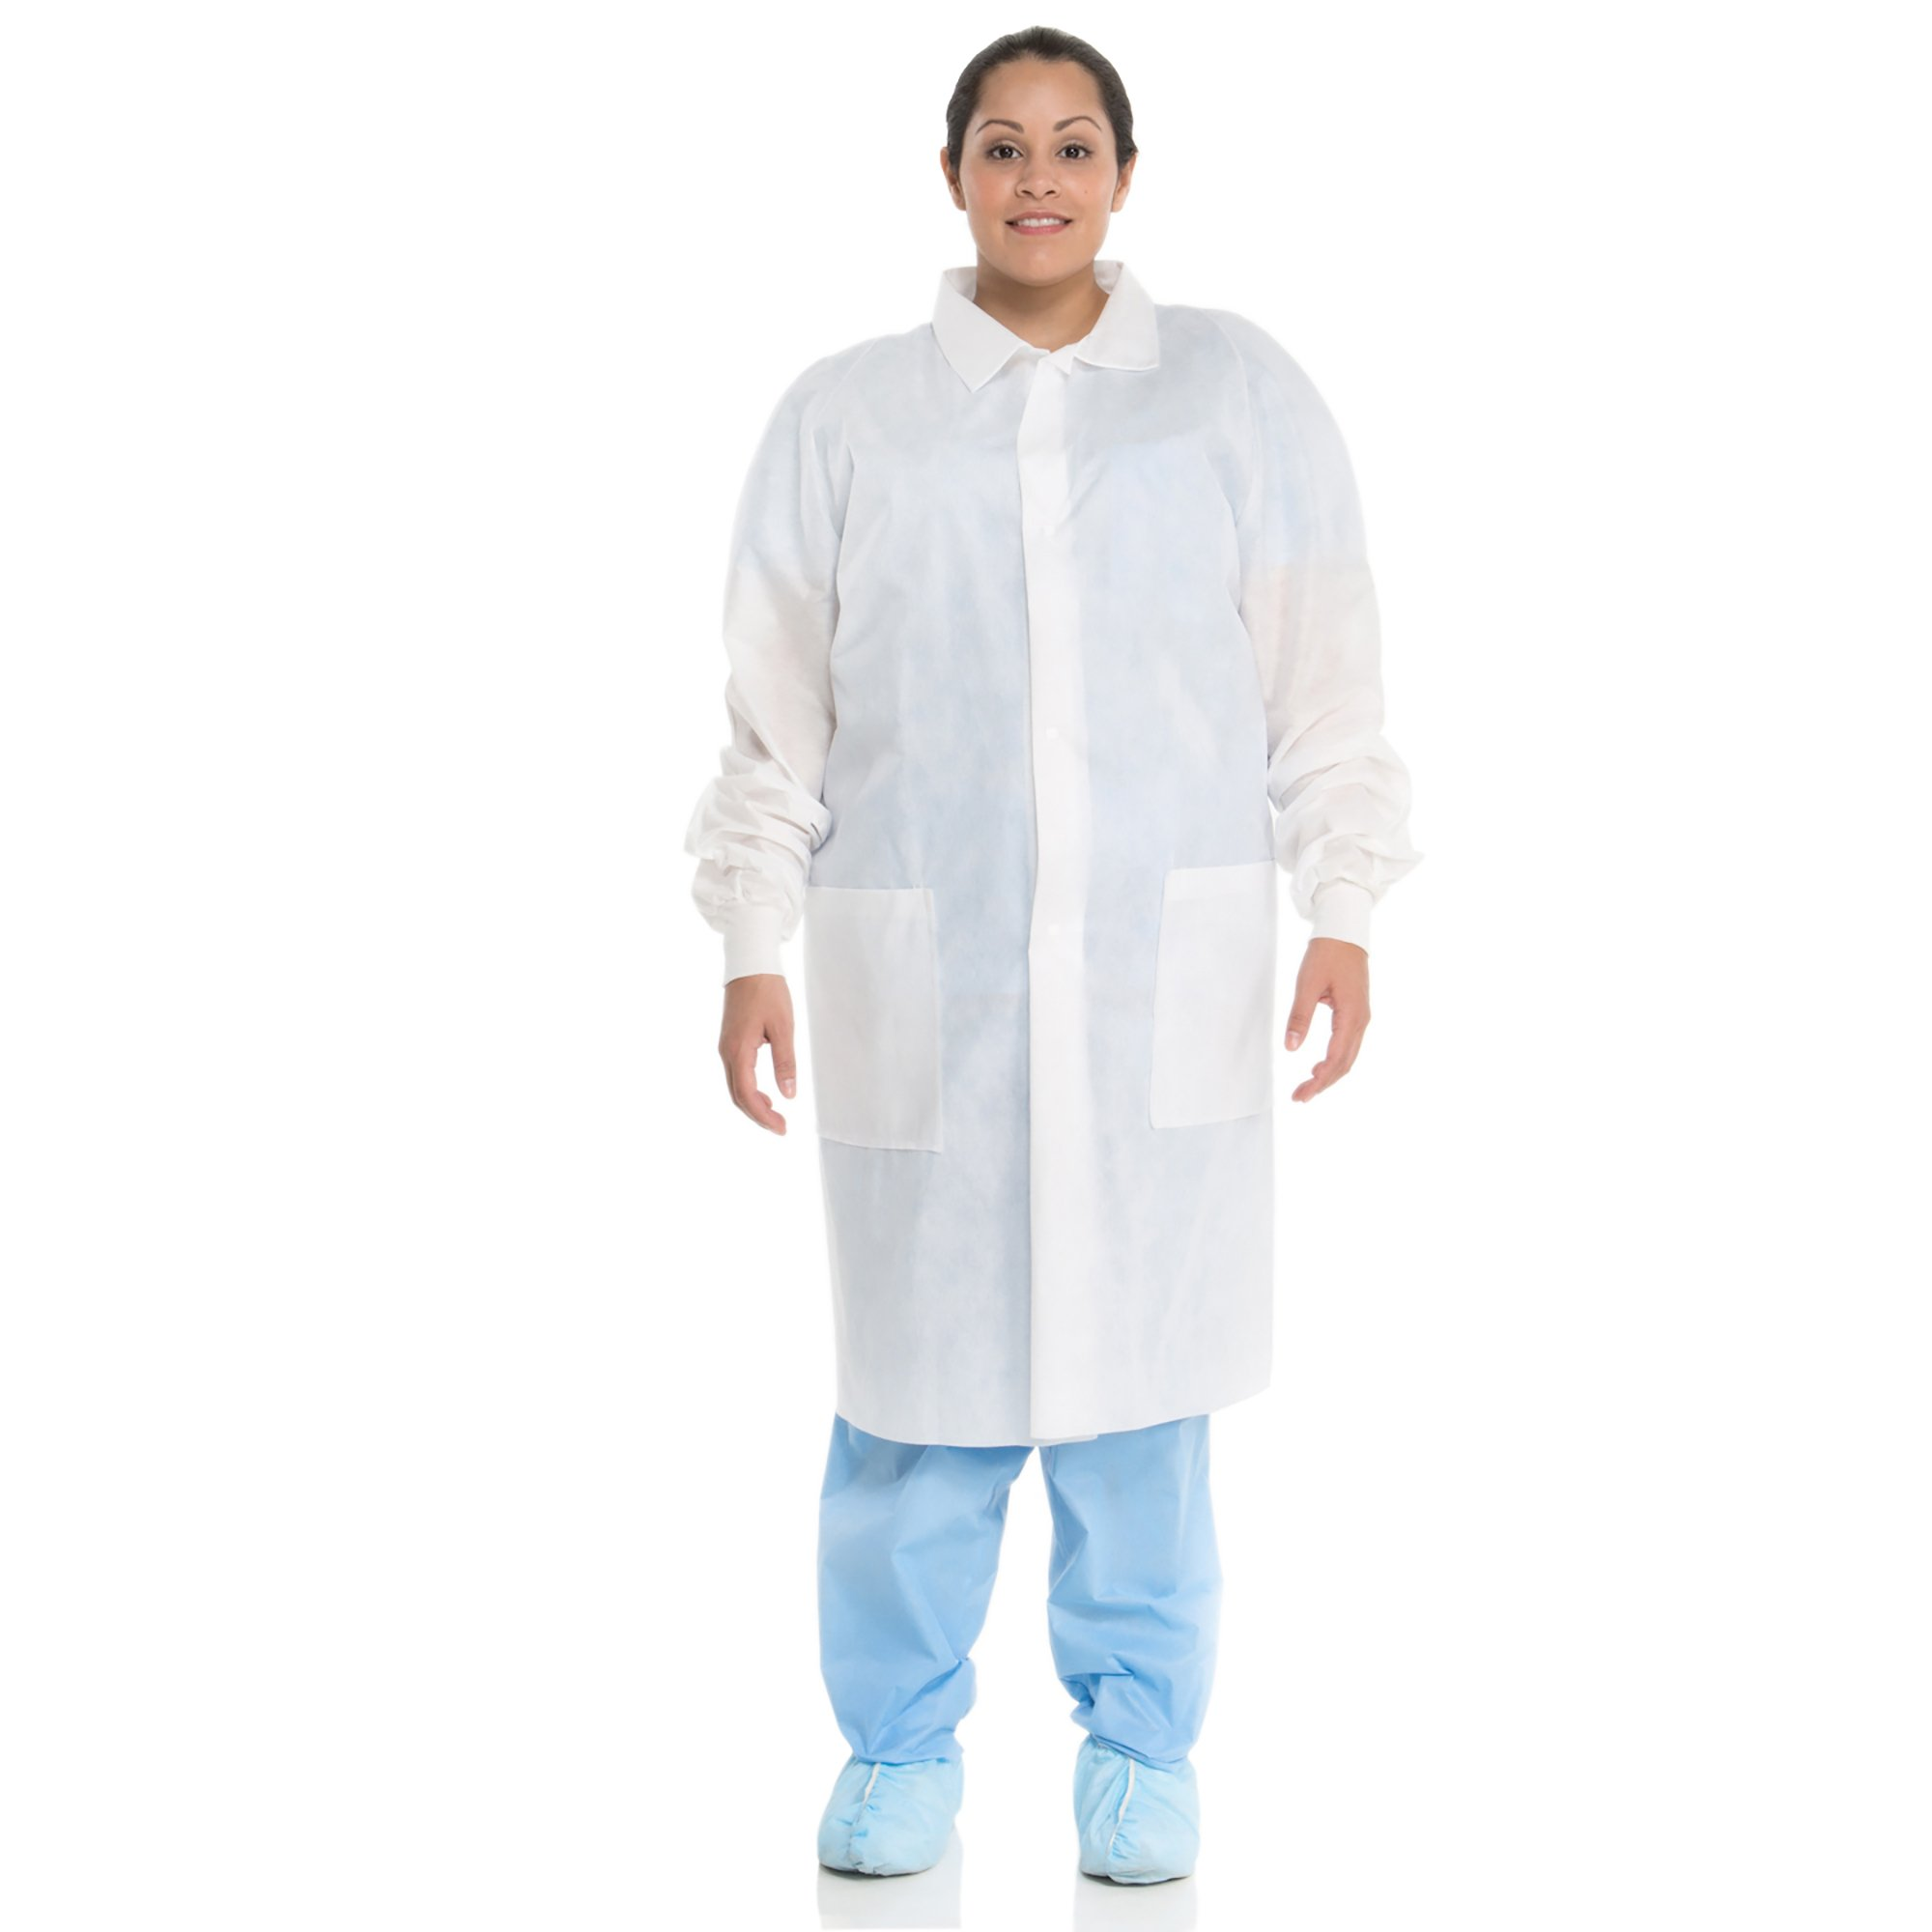 Kimberly Clark Basic Lab Coats (10121), Protective 3-Layer SMS Fabric, Knit Cuffs, Mid-Calf Length, Unisex, White, Medium, 25 / Case